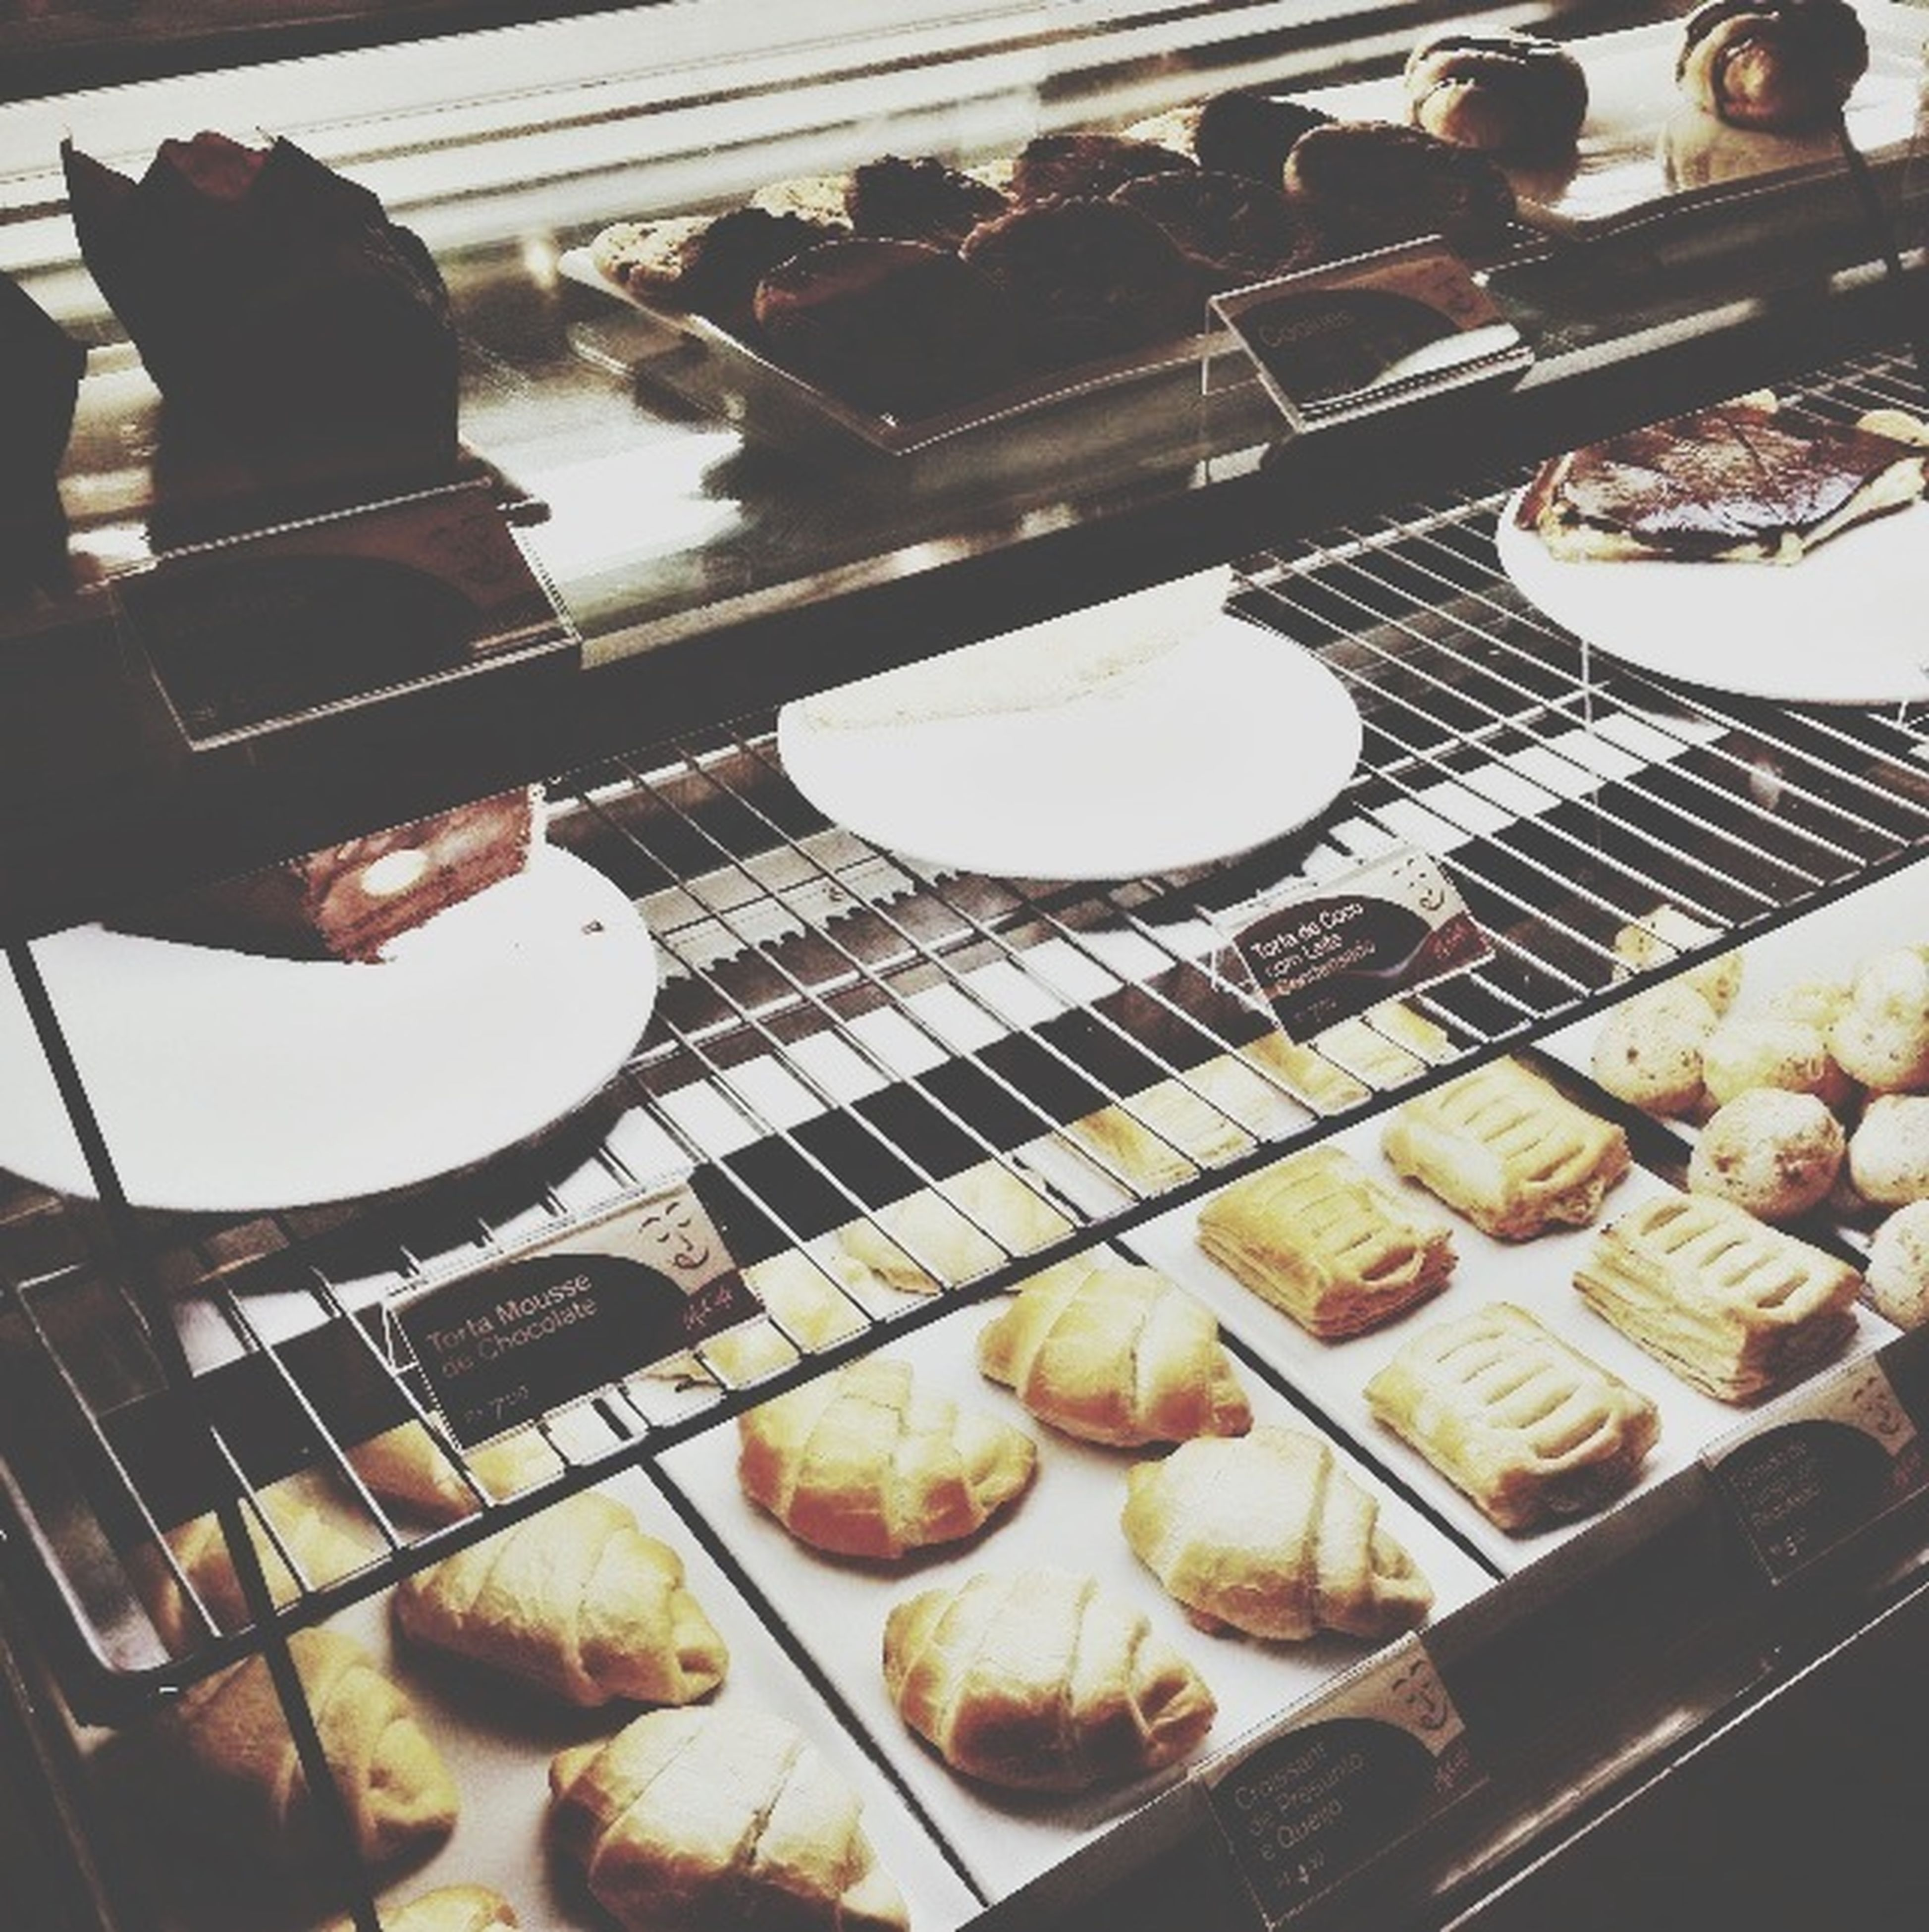 food and drink, indoors, food, freshness, ready-to-eat, still life, table, sweet food, plate, dessert, unhealthy eating, indulgence, high angle view, baked, tray, meal, bread, close-up, temptation, restaurant